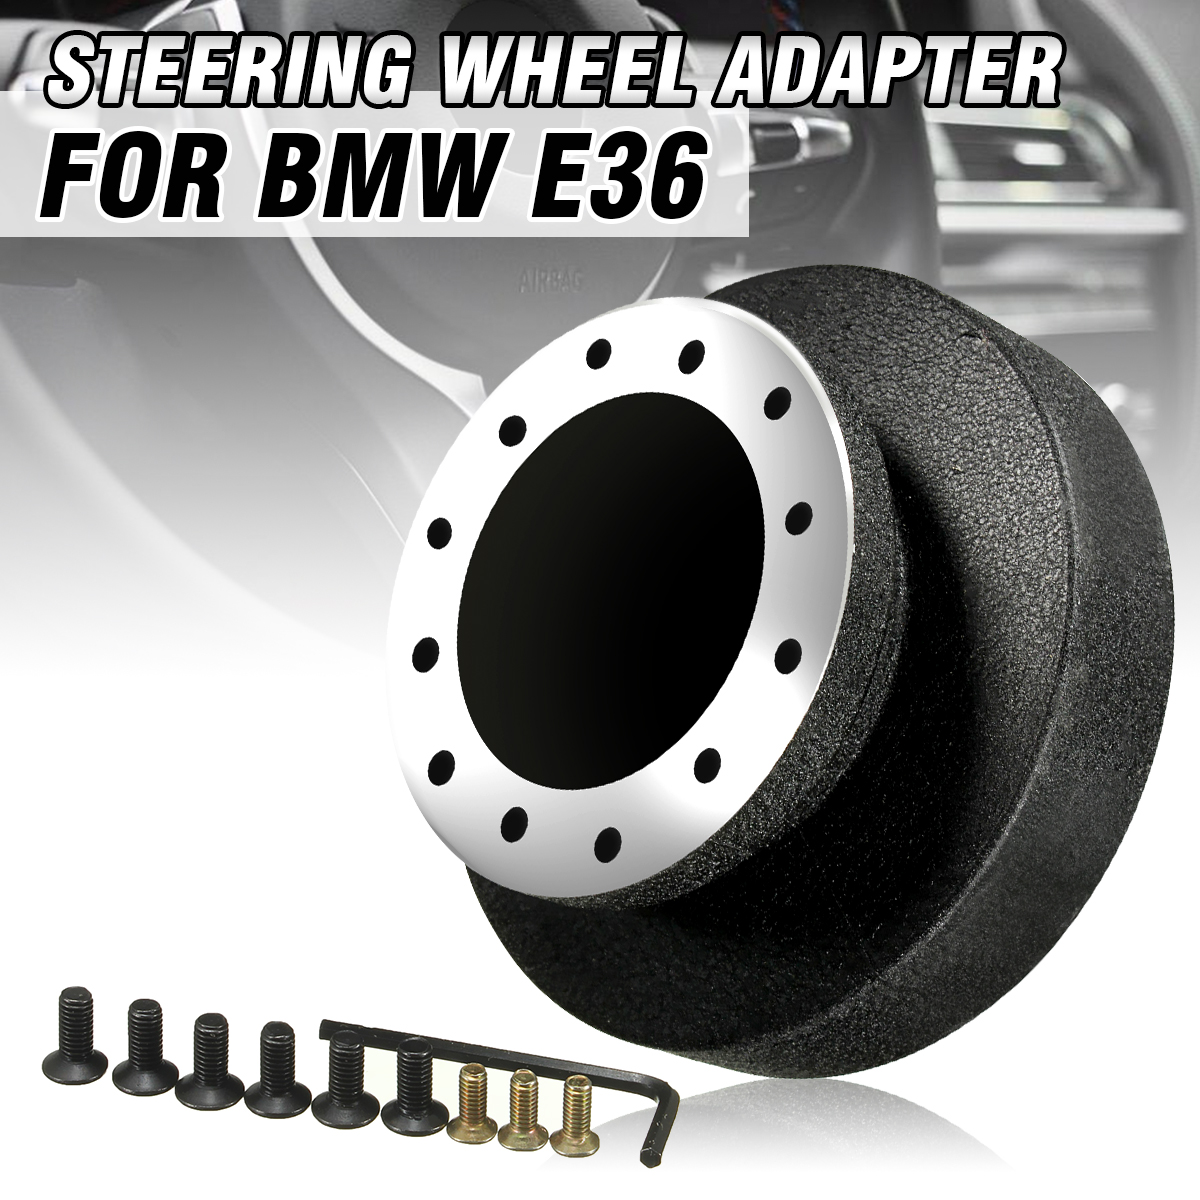 Steering Wheel Racing Hub Adapter Boss Kit Fit For BMW E36 Nardi for Personal Abarth Indy Raid Italvolanti etcSteering Wheel Racing Hub Adapter Boss Kit Fit For BMW E36 Nardi for Personal Abarth Indy Raid Italvolanti etc